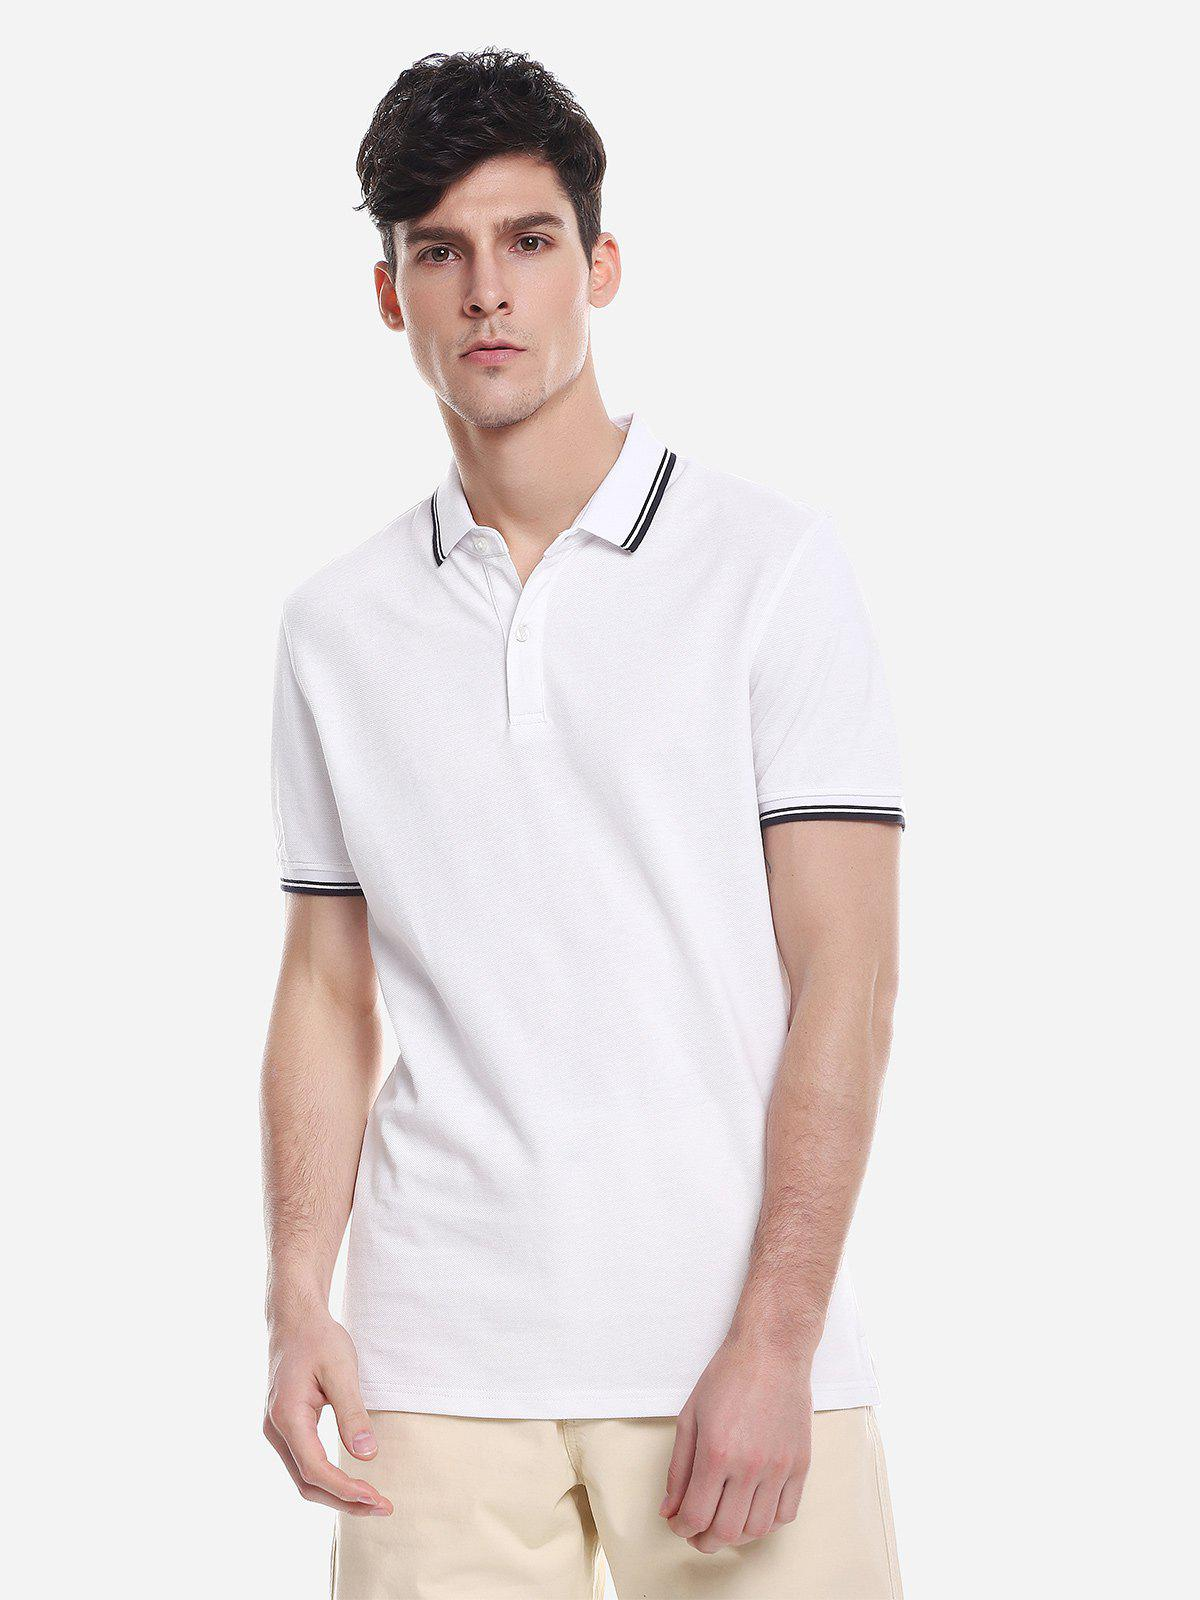 Best Contrast Color POLO Shirt